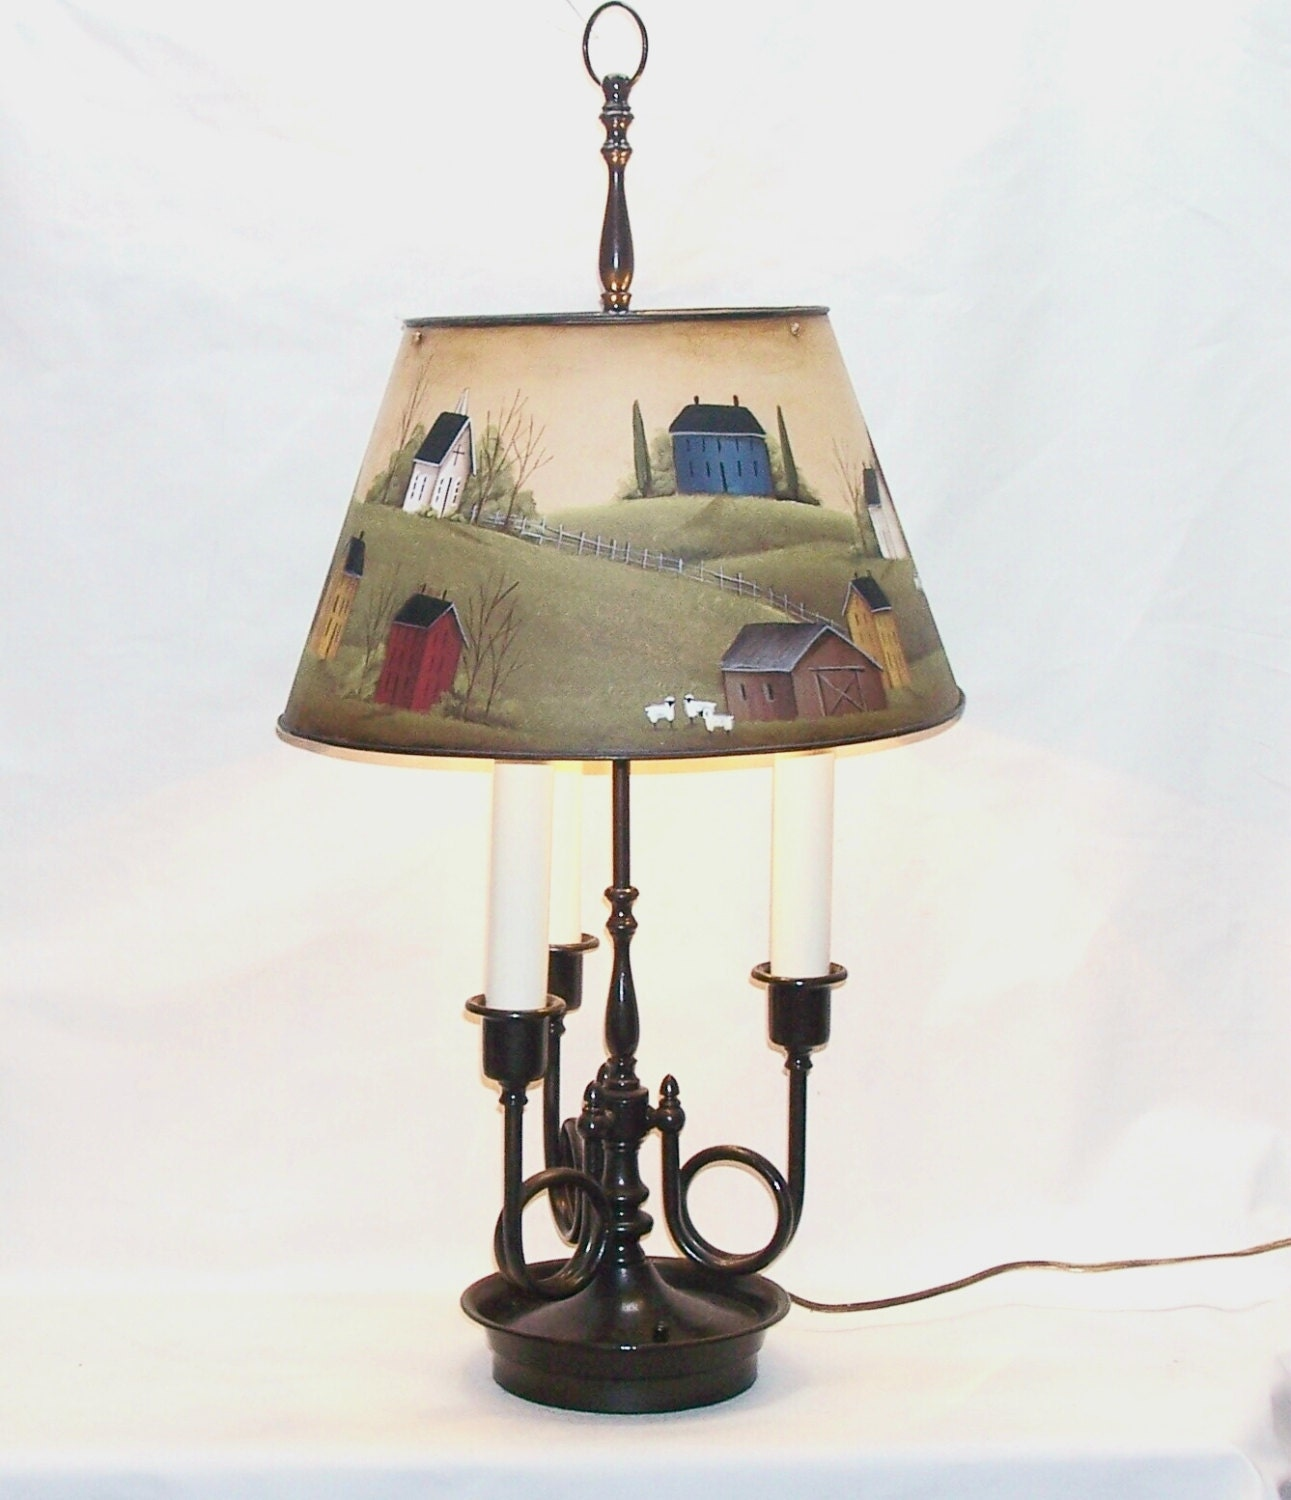 Hand Painted Lamp Shades: Lg Table Lamp Hand Painted Metal Shade Primitive Folk Art Home